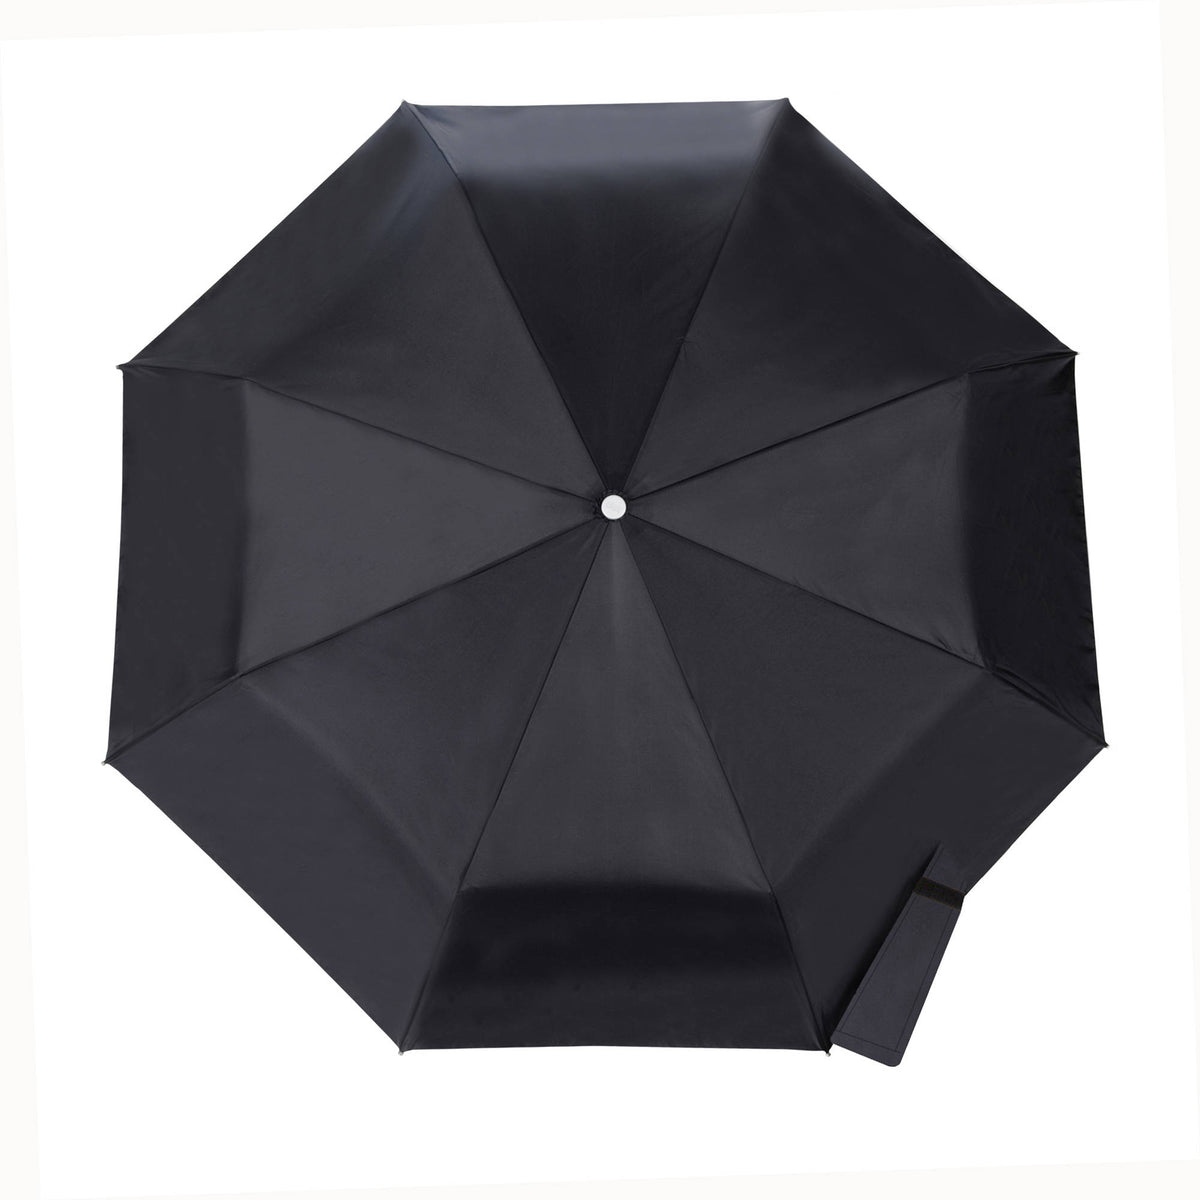 totes Automatic Classic Compact SunGuard and NeverWet Umbrella black top view open